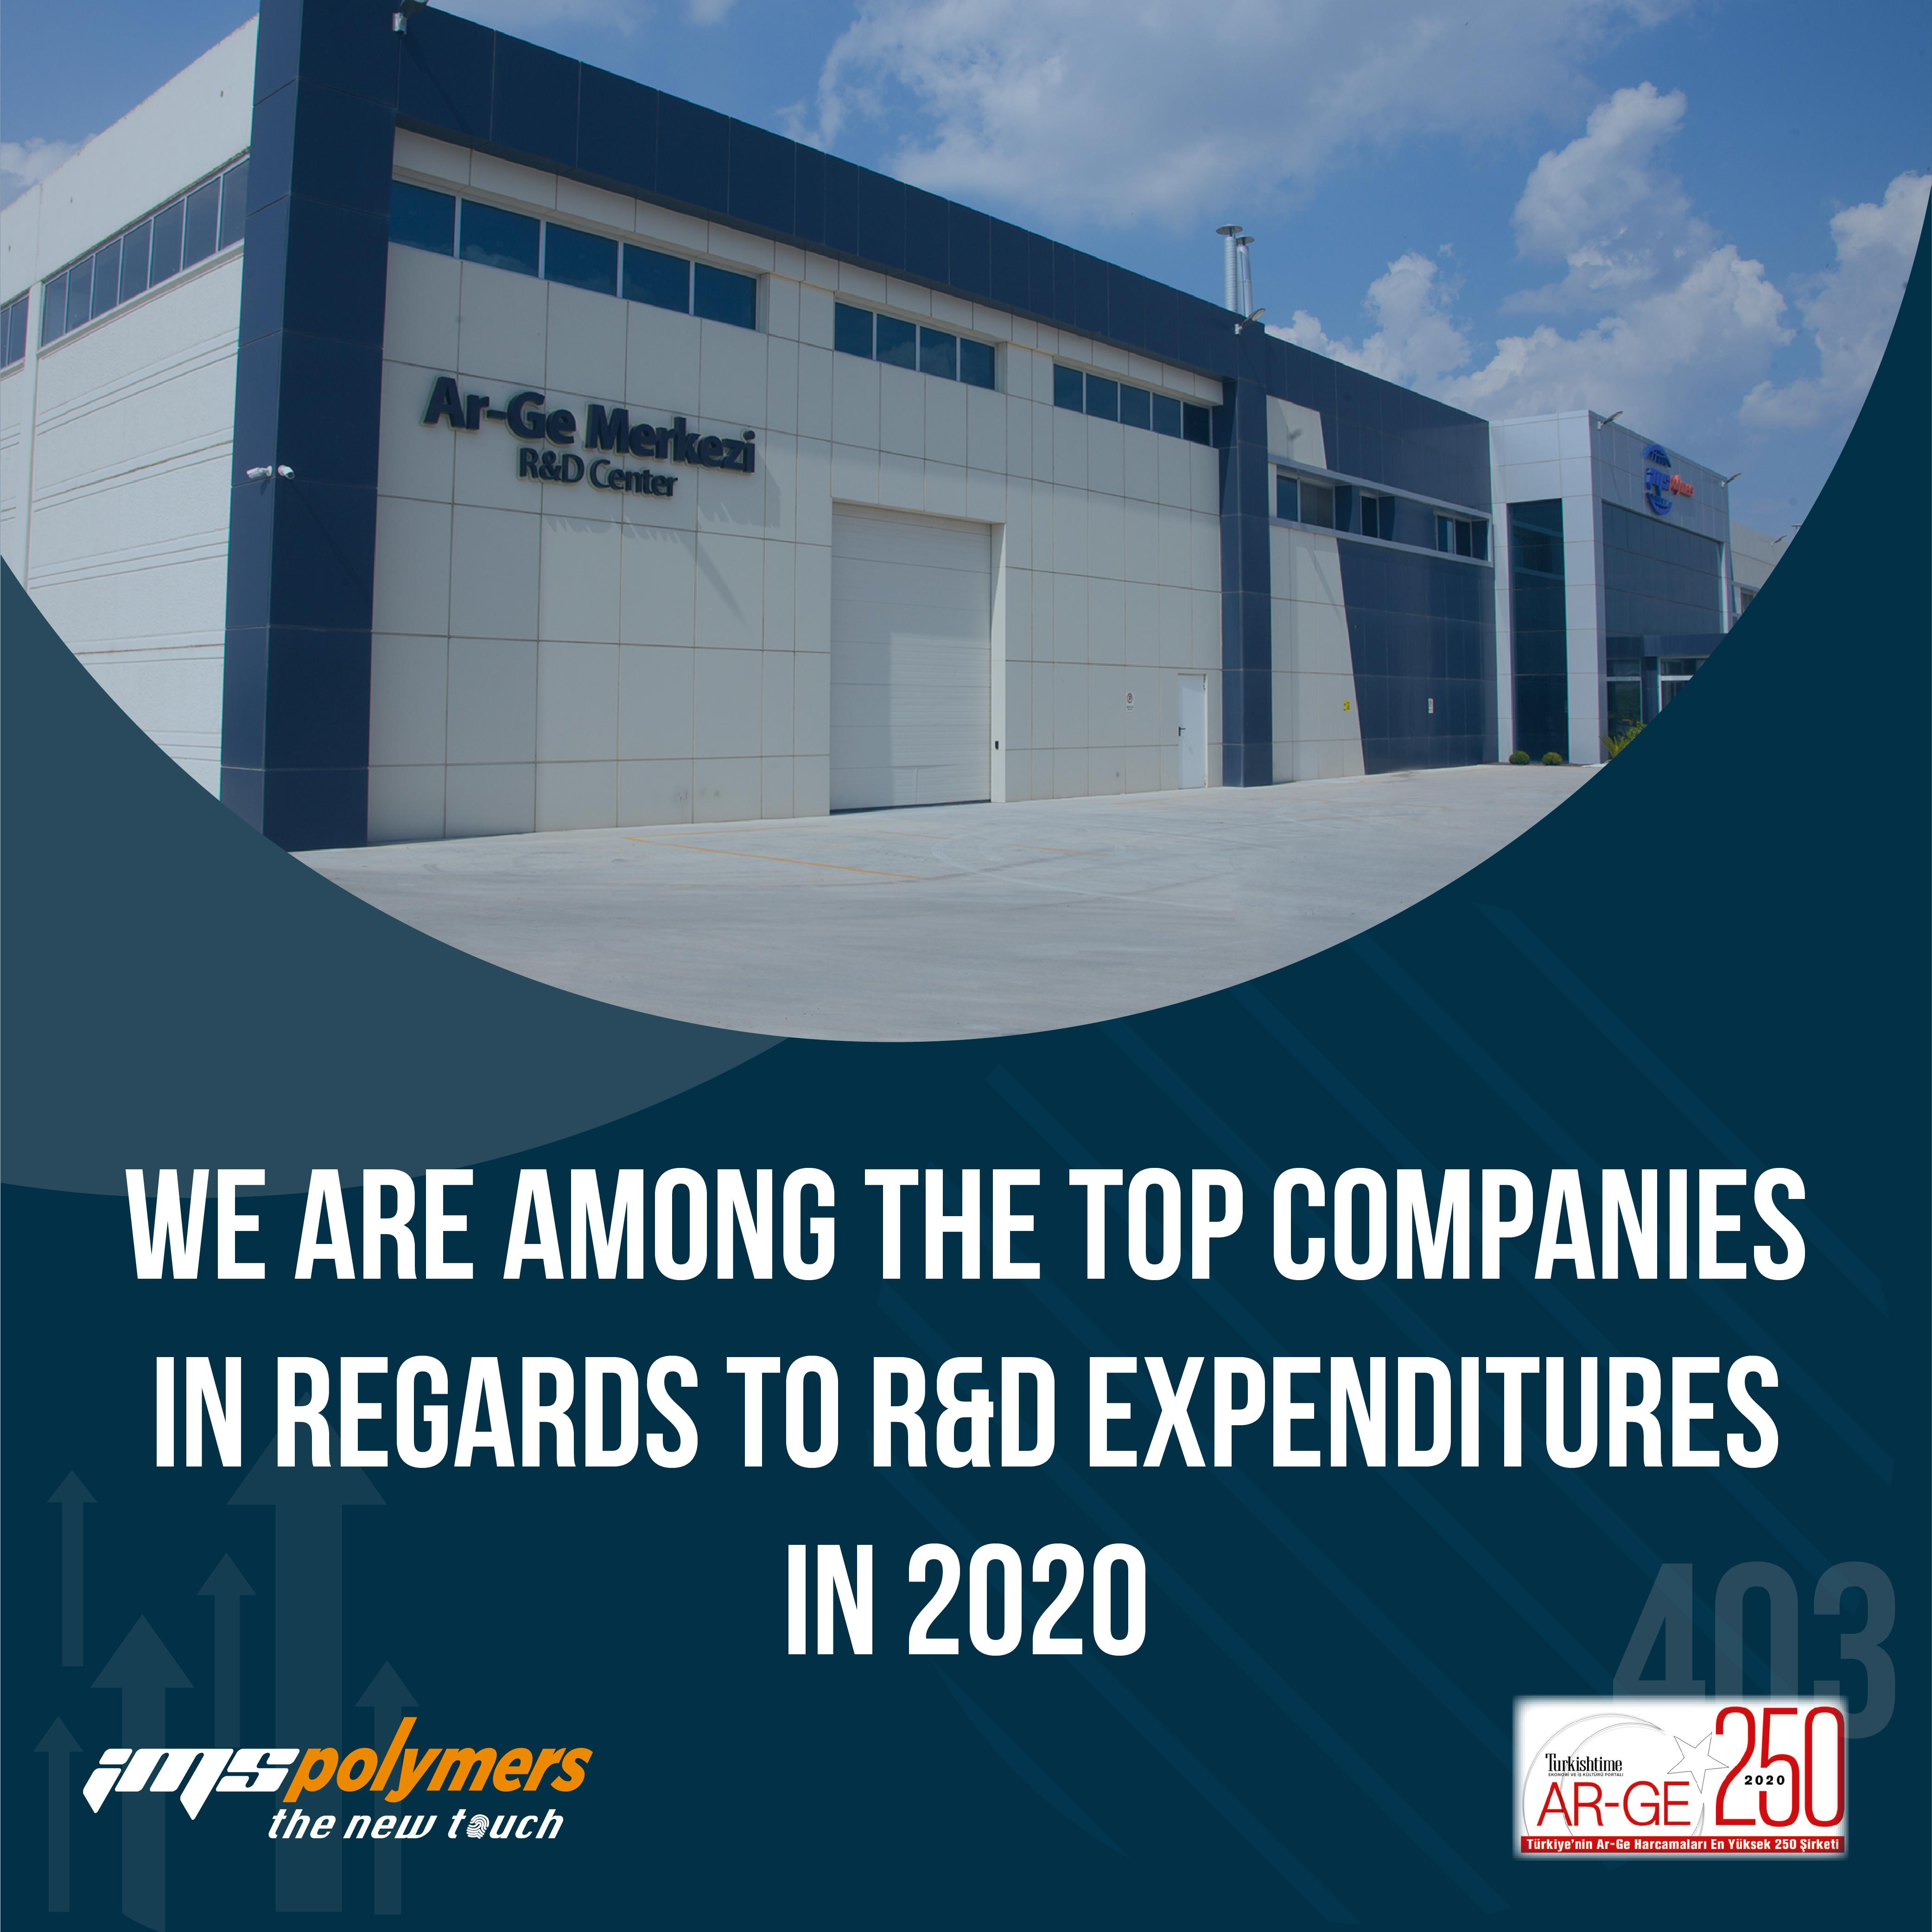 The Results of the Research for Turkey's Top Companies in regard to R&D Expenditure